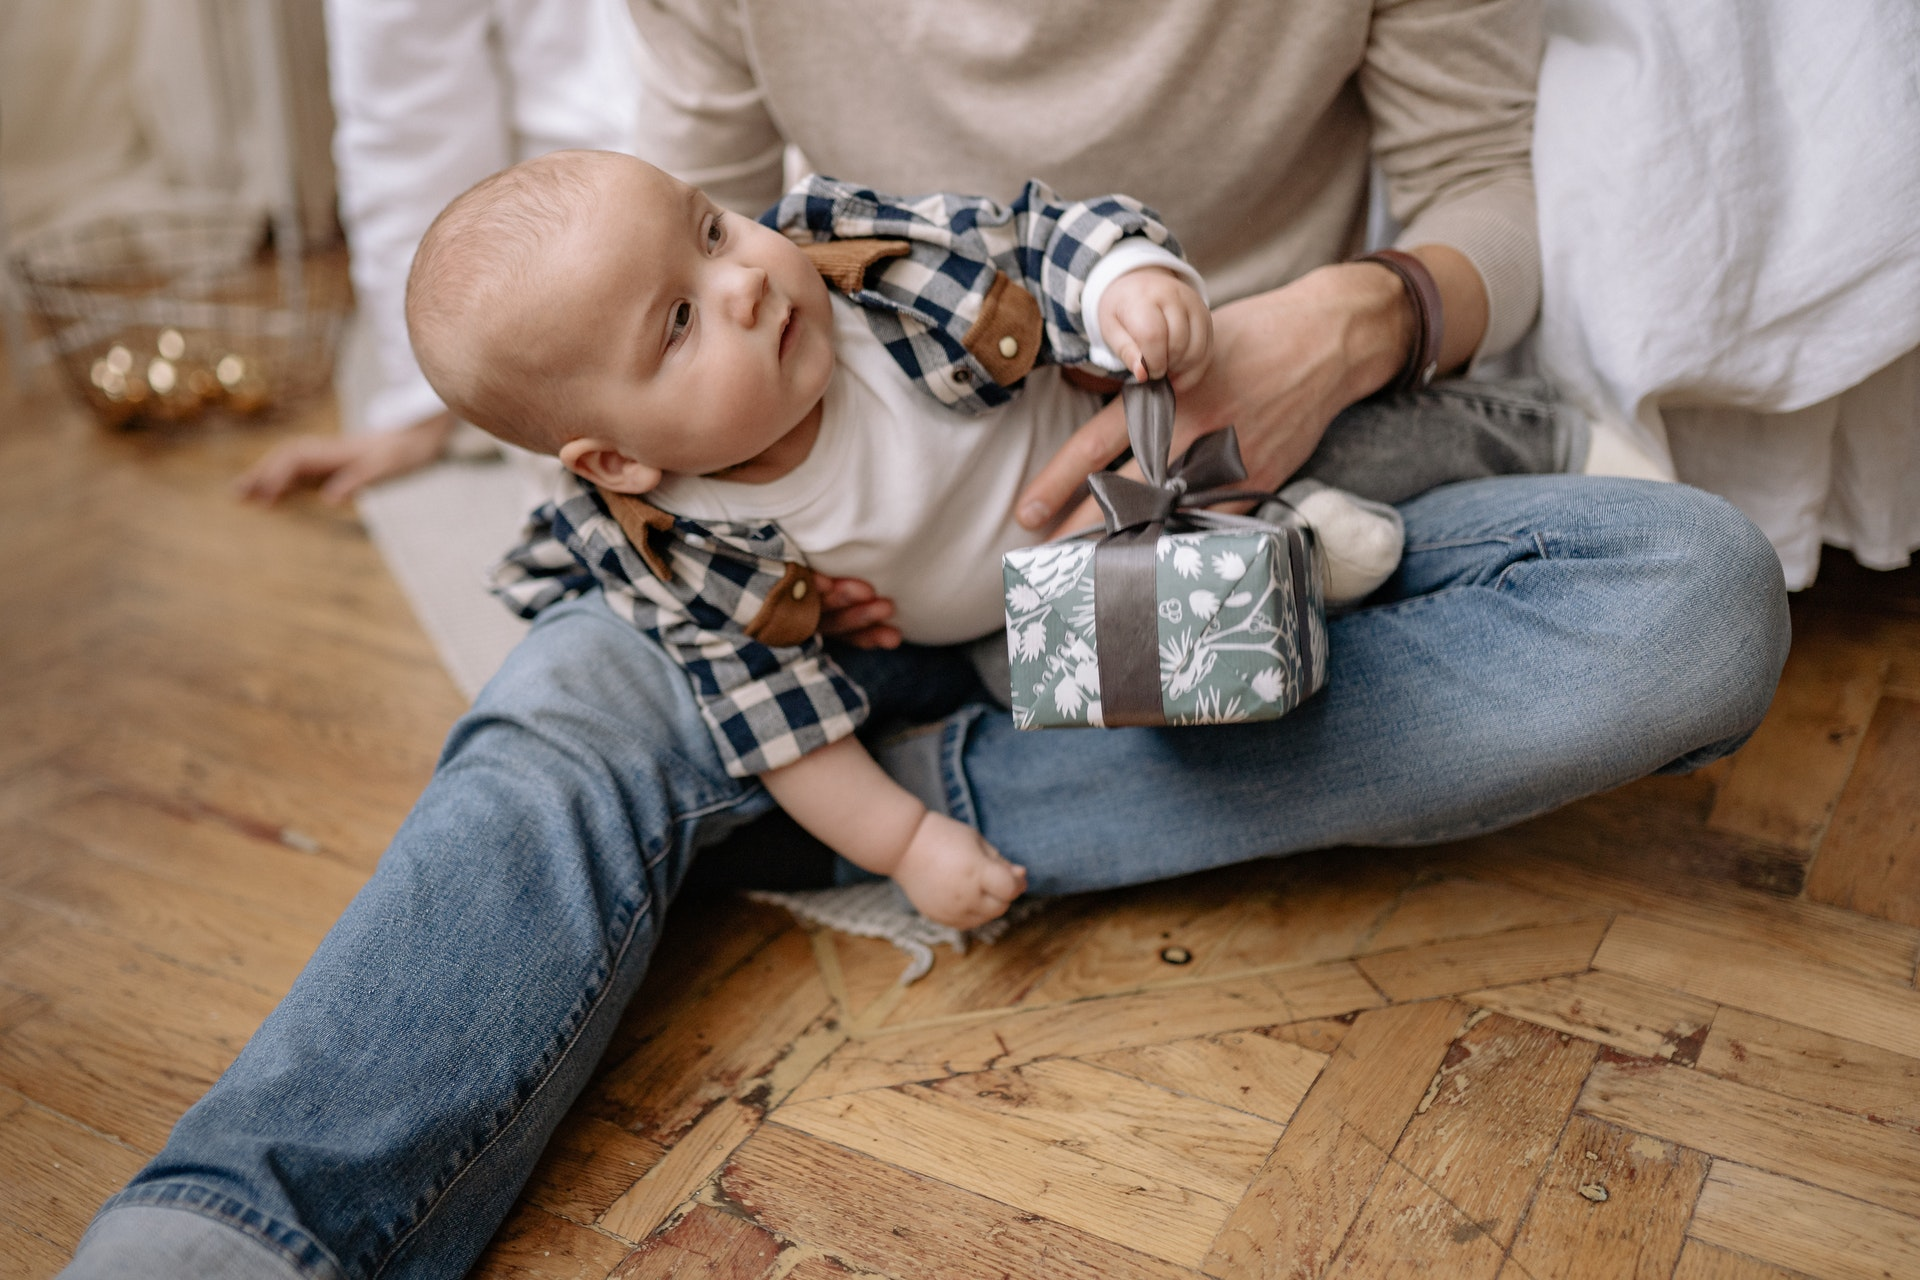 Ideal Gifts For Infants & How To Surprise The Parents